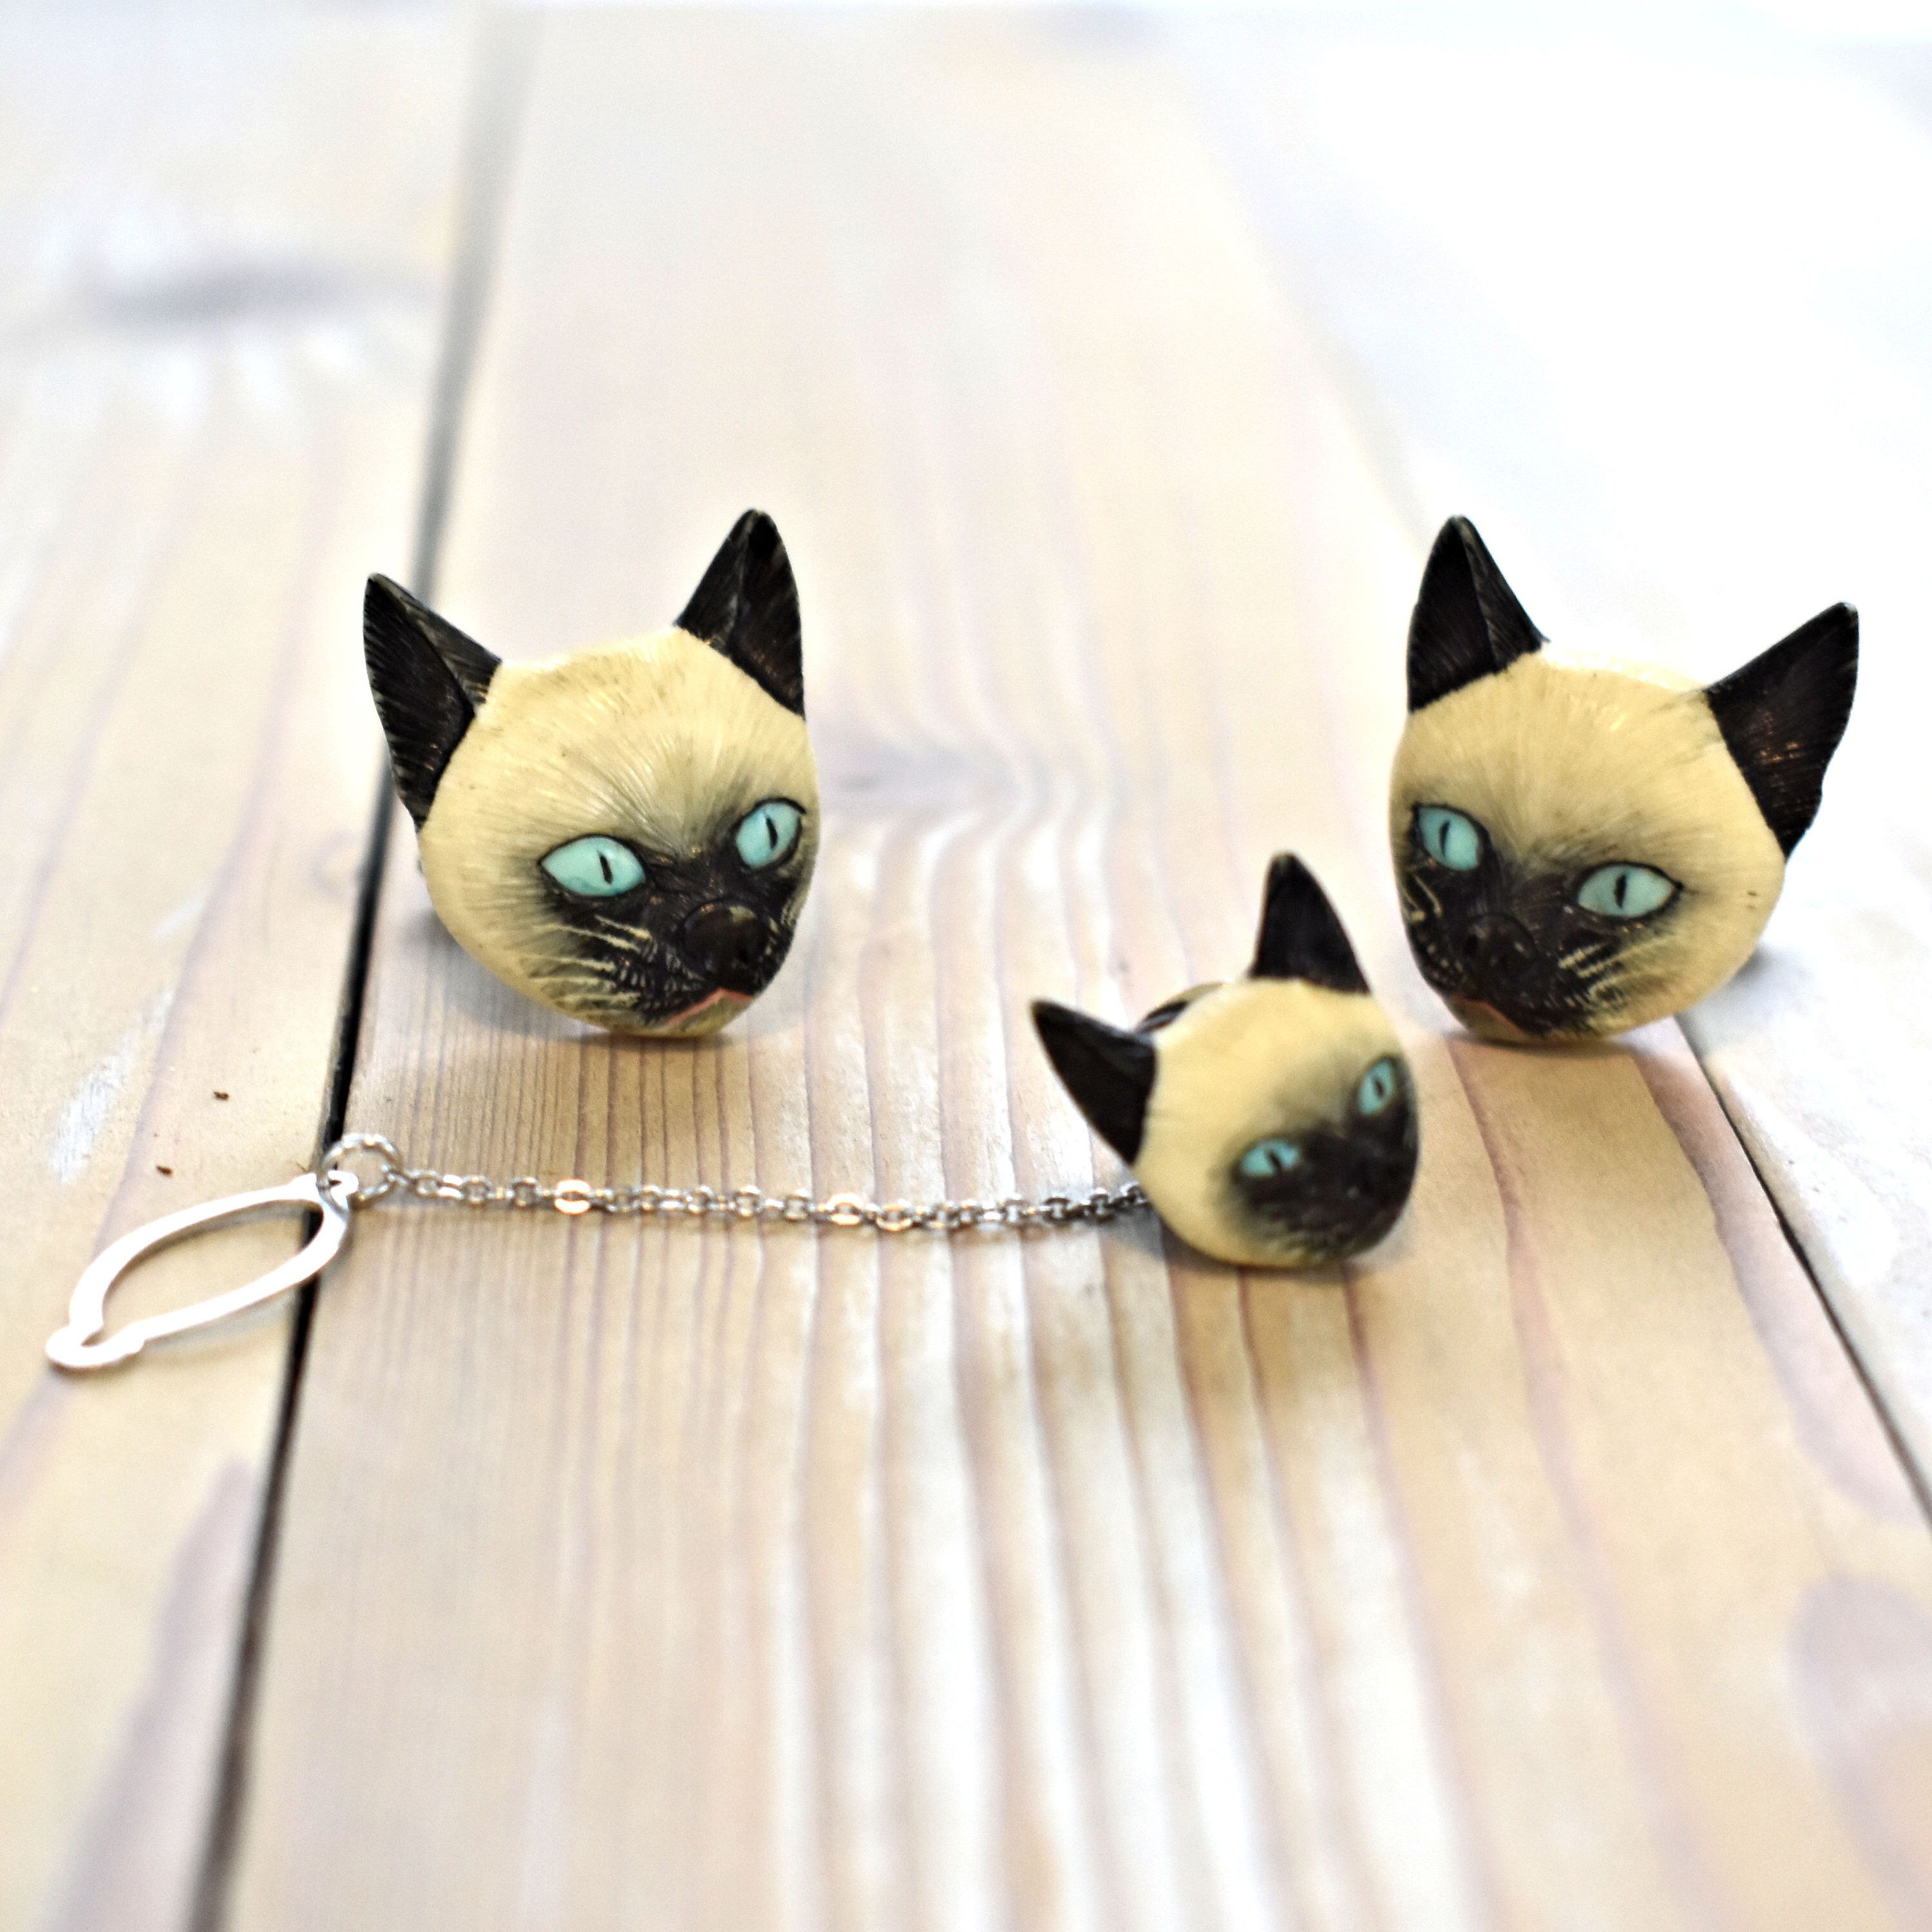 Vintage Cat Cuff Links And Tie Tack Siamese Cat Cufflinks Sterling Silver And Porcelain Gift For Dad Gift For Husband Vintage Cat Gifts For Dad Great